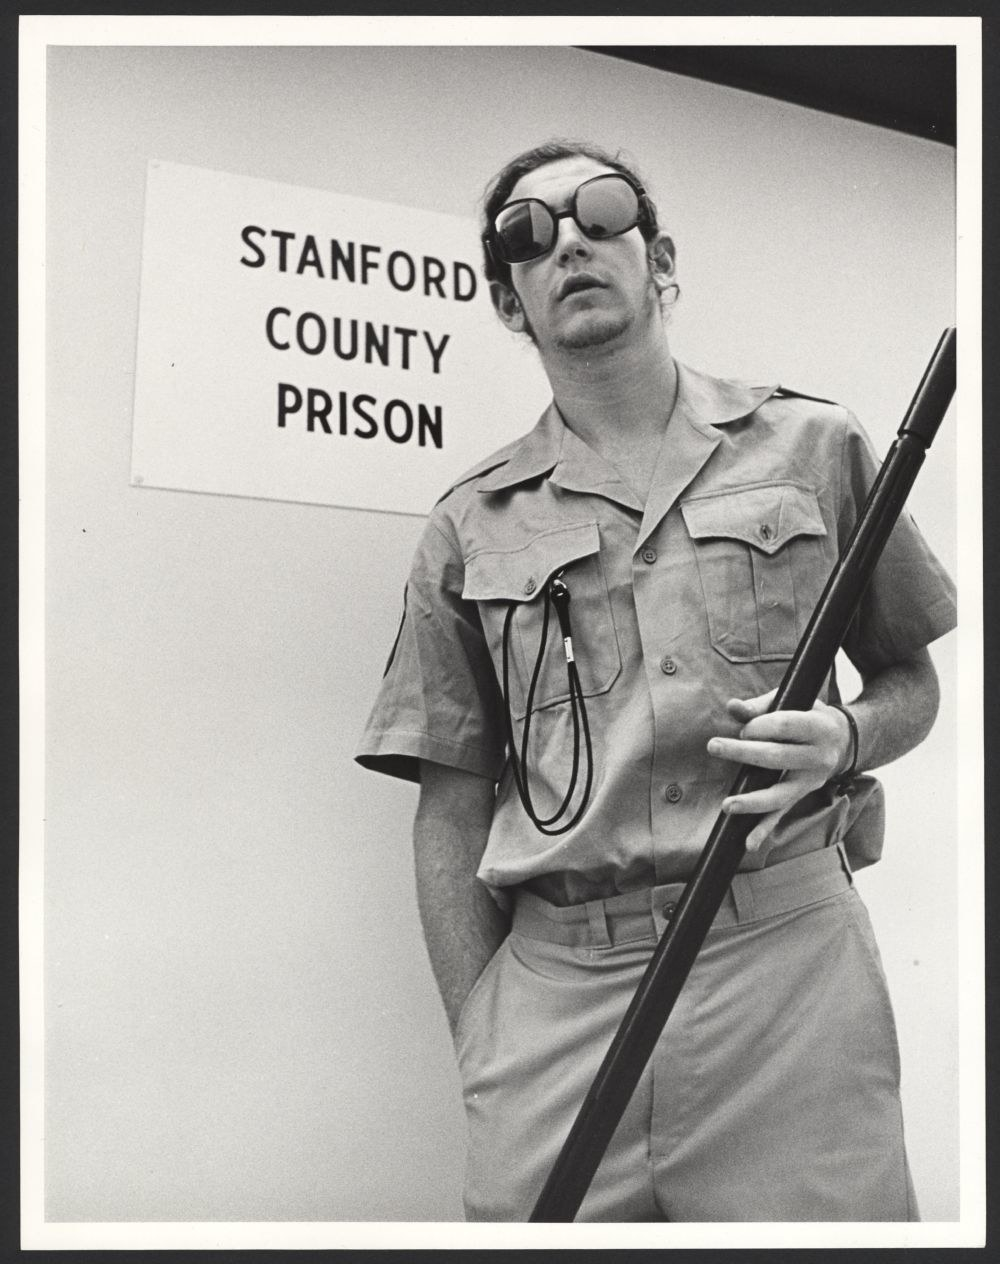 Here's Why We Need To Rethink Everything We Know About The Stanford Prison Experiment